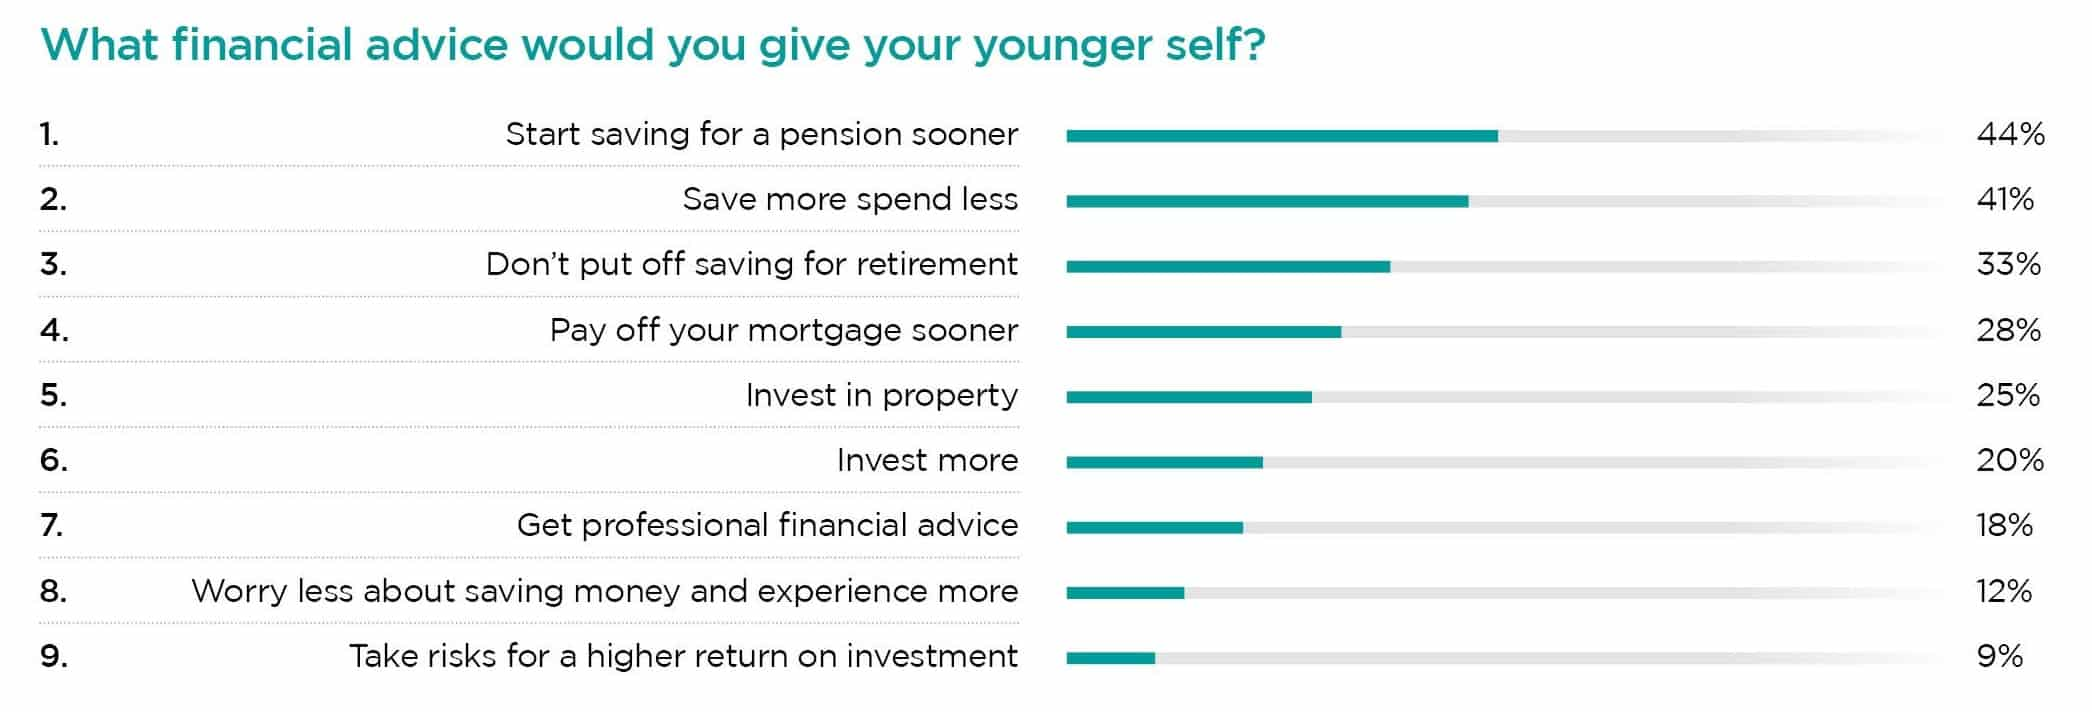 What financial advice would you give your younger self?